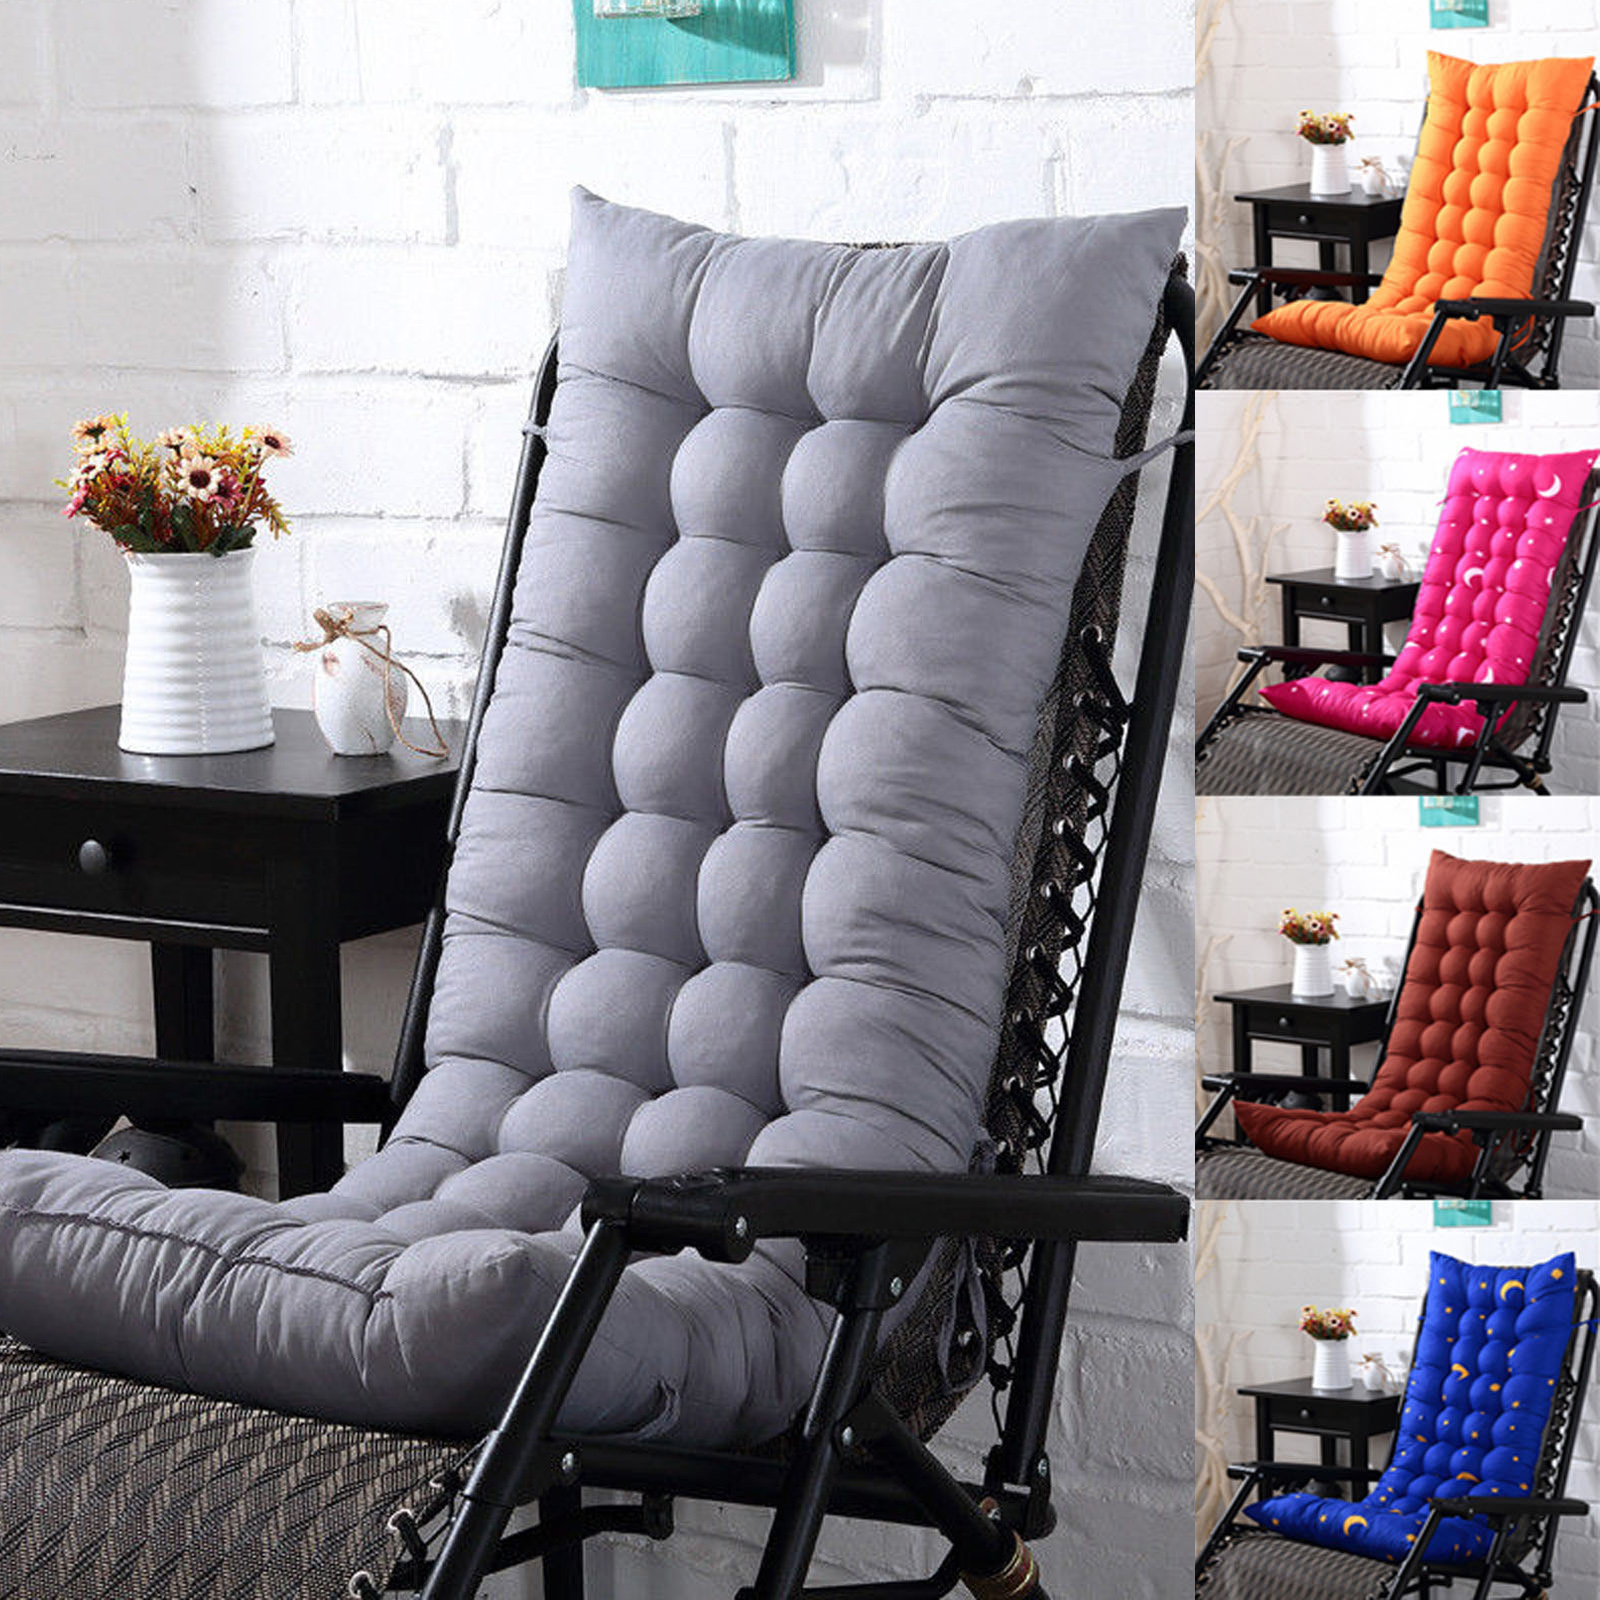 Lounge Chair Cushion Tufted Deck Chaise Padding For Outdoor Patio